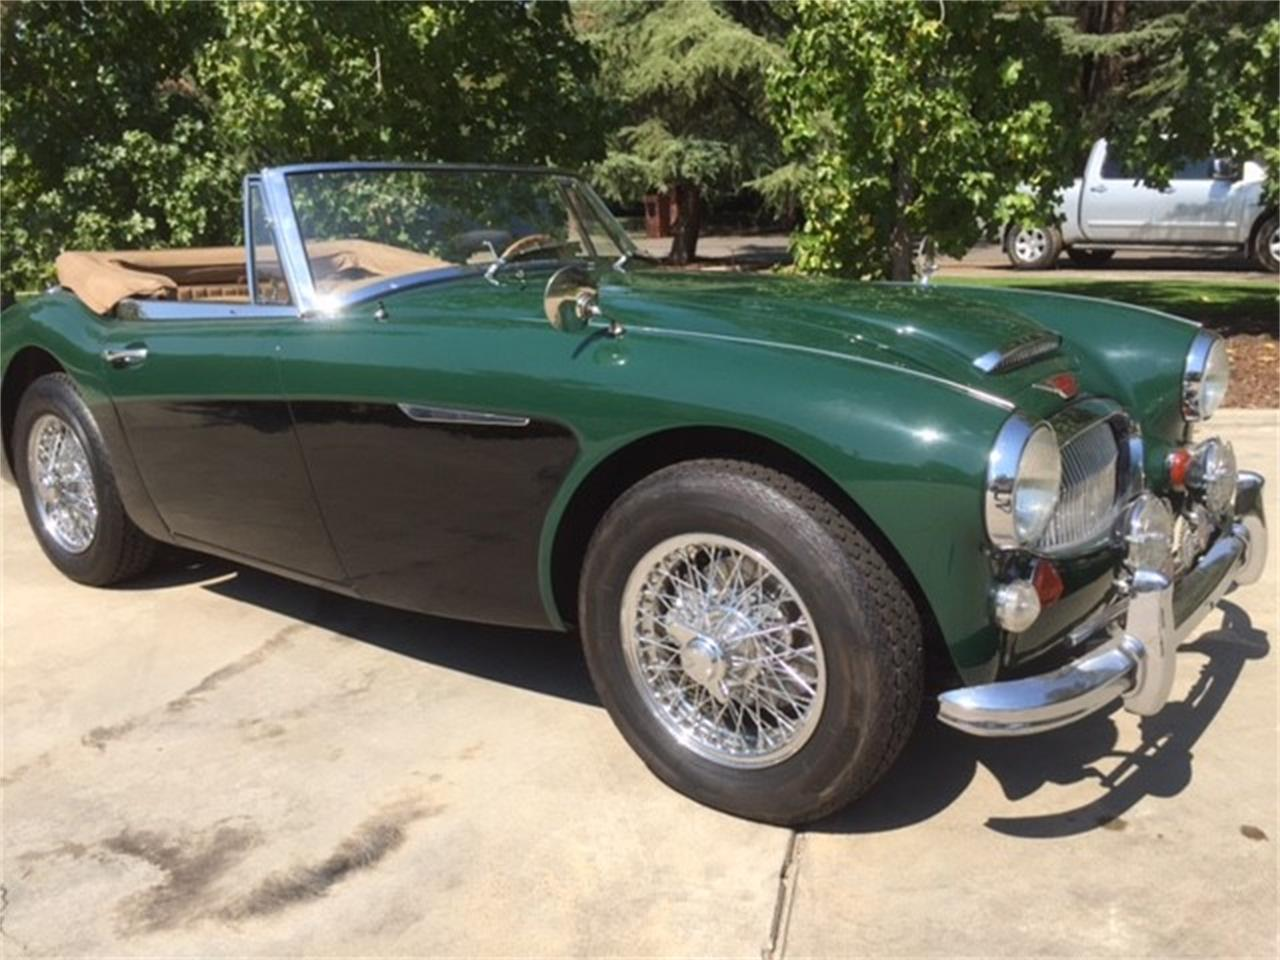 Large Picture of '67 Austin-Healey 3000 located in California - $65,000.00 - LBWQ